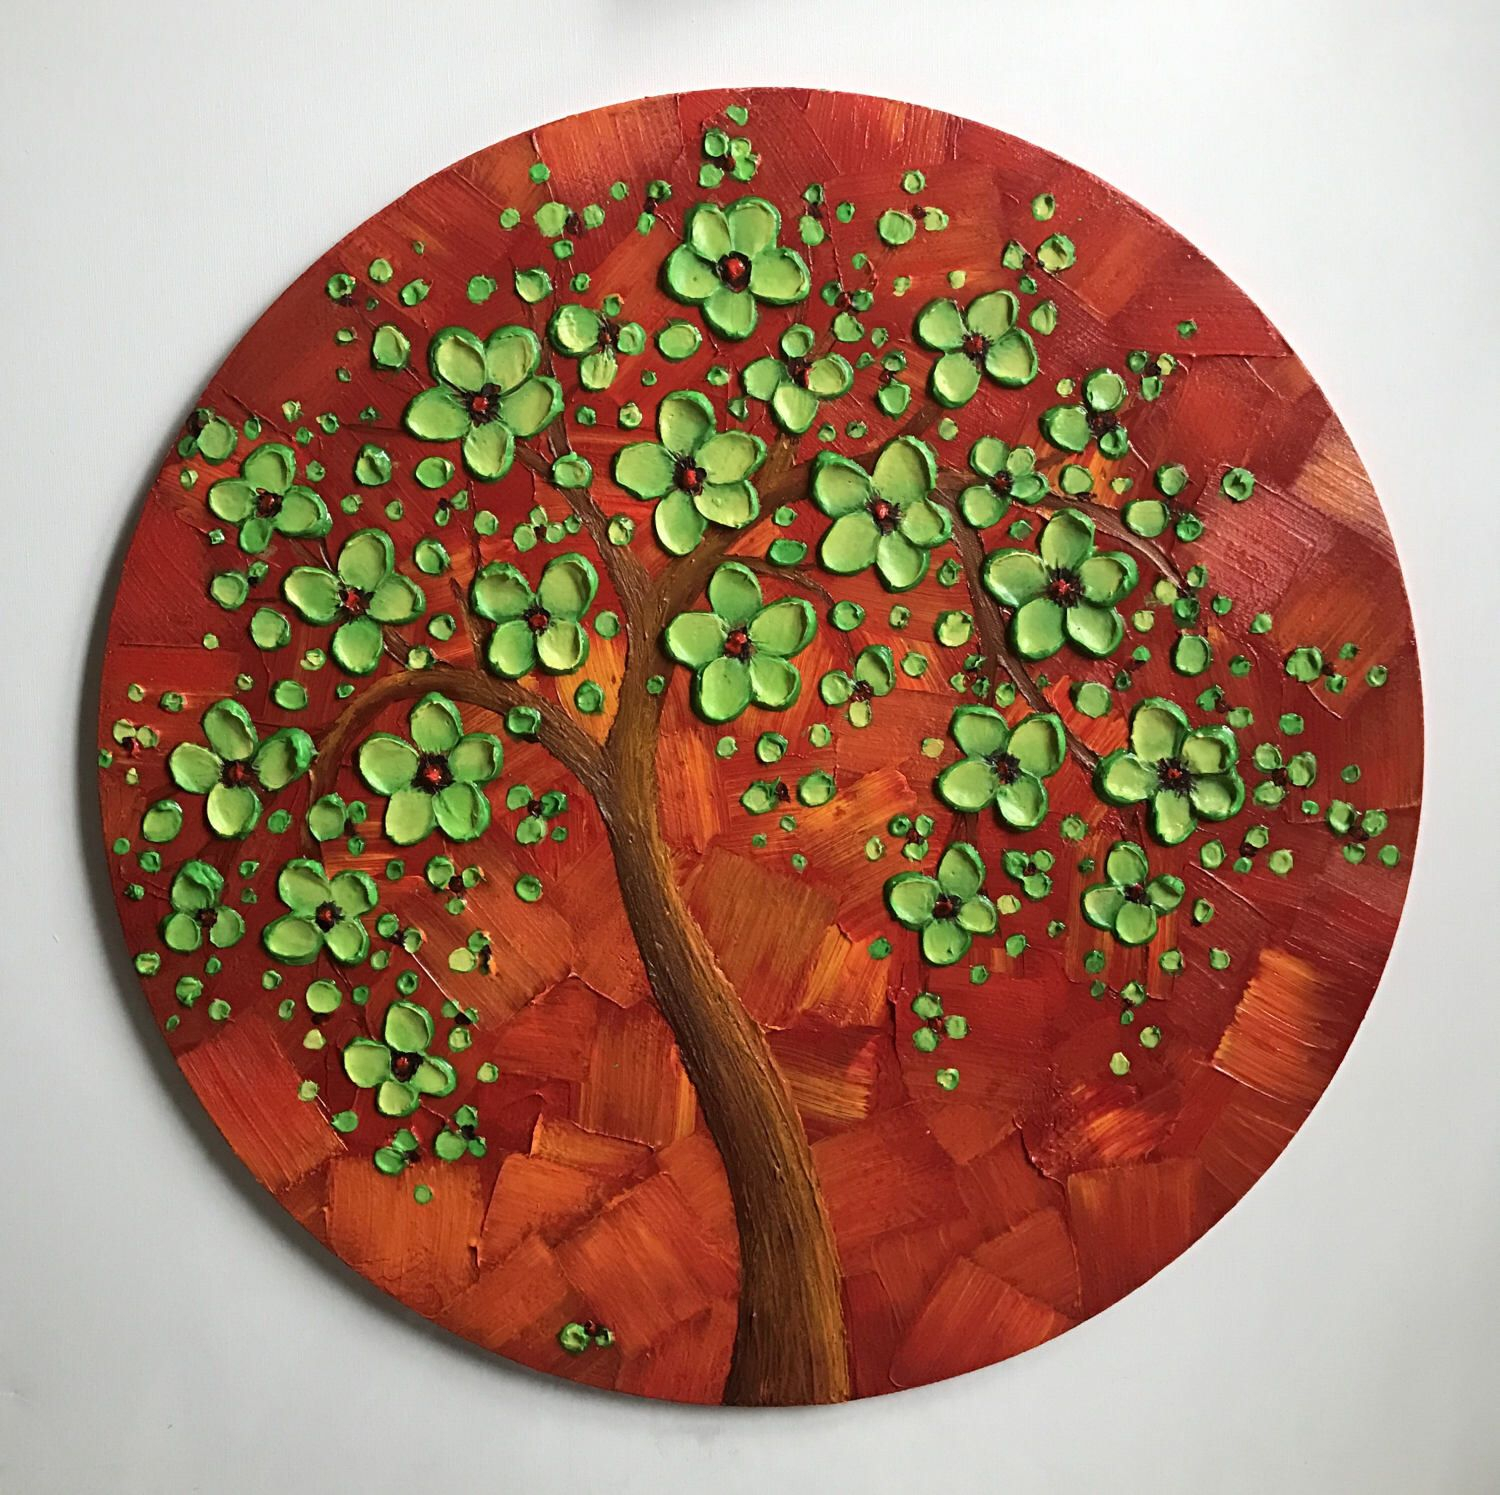 Abstract Art, Cherry Blossom Tree Painting, Round Wall Decor Throughout Contemporary Abstract Round Wall Decor (View 2 of 30)